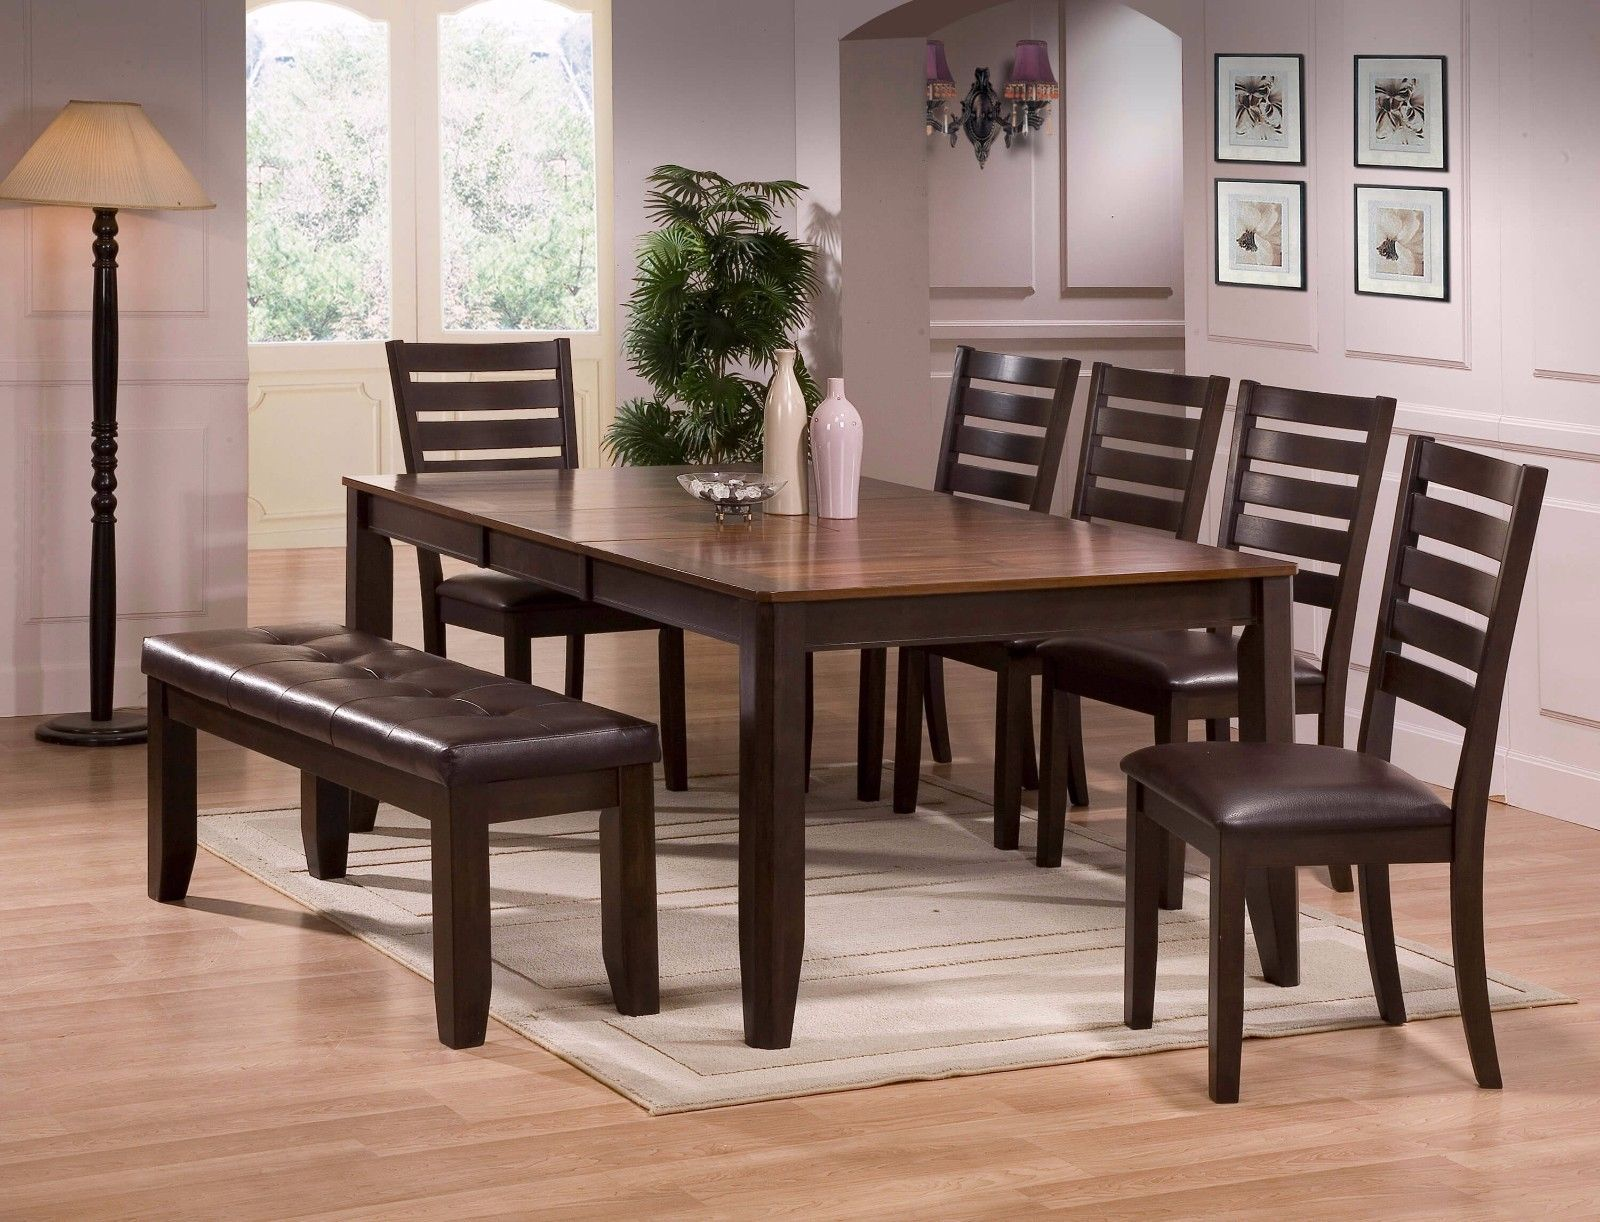 Crown Mark 2328 Dining Room Set 7pc. Elliott Collection Transitional Style